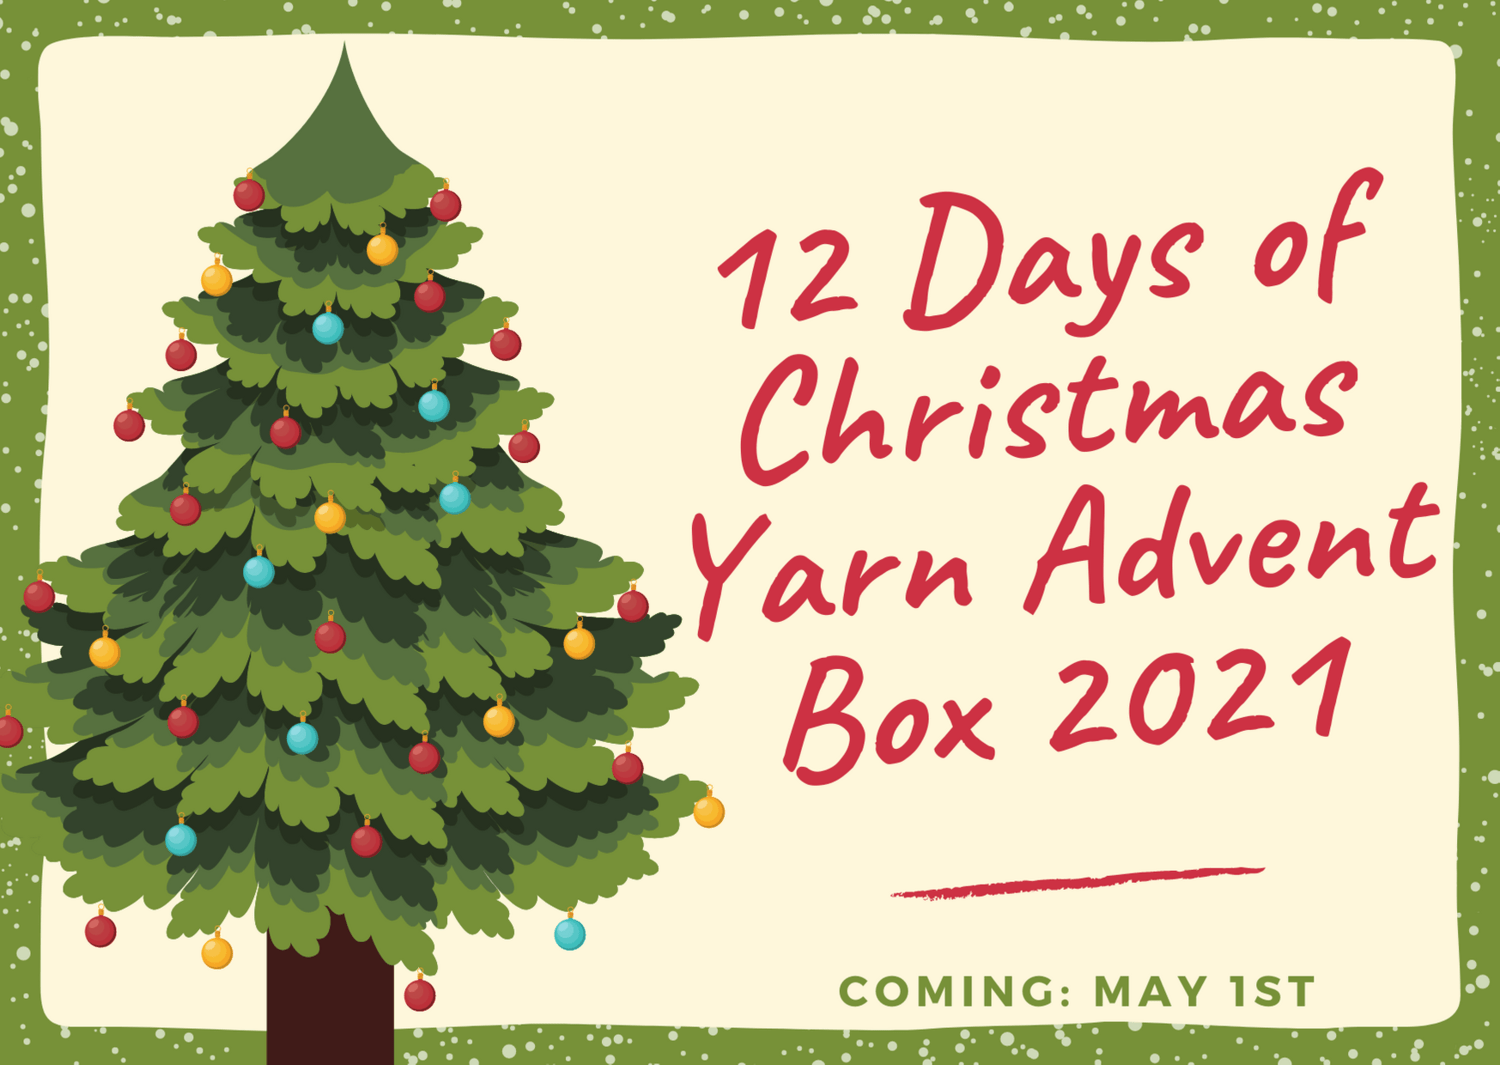 Coming Soon: May 1st, 2021 - 12 Days of Christmas Advent Calendar Yarn Box